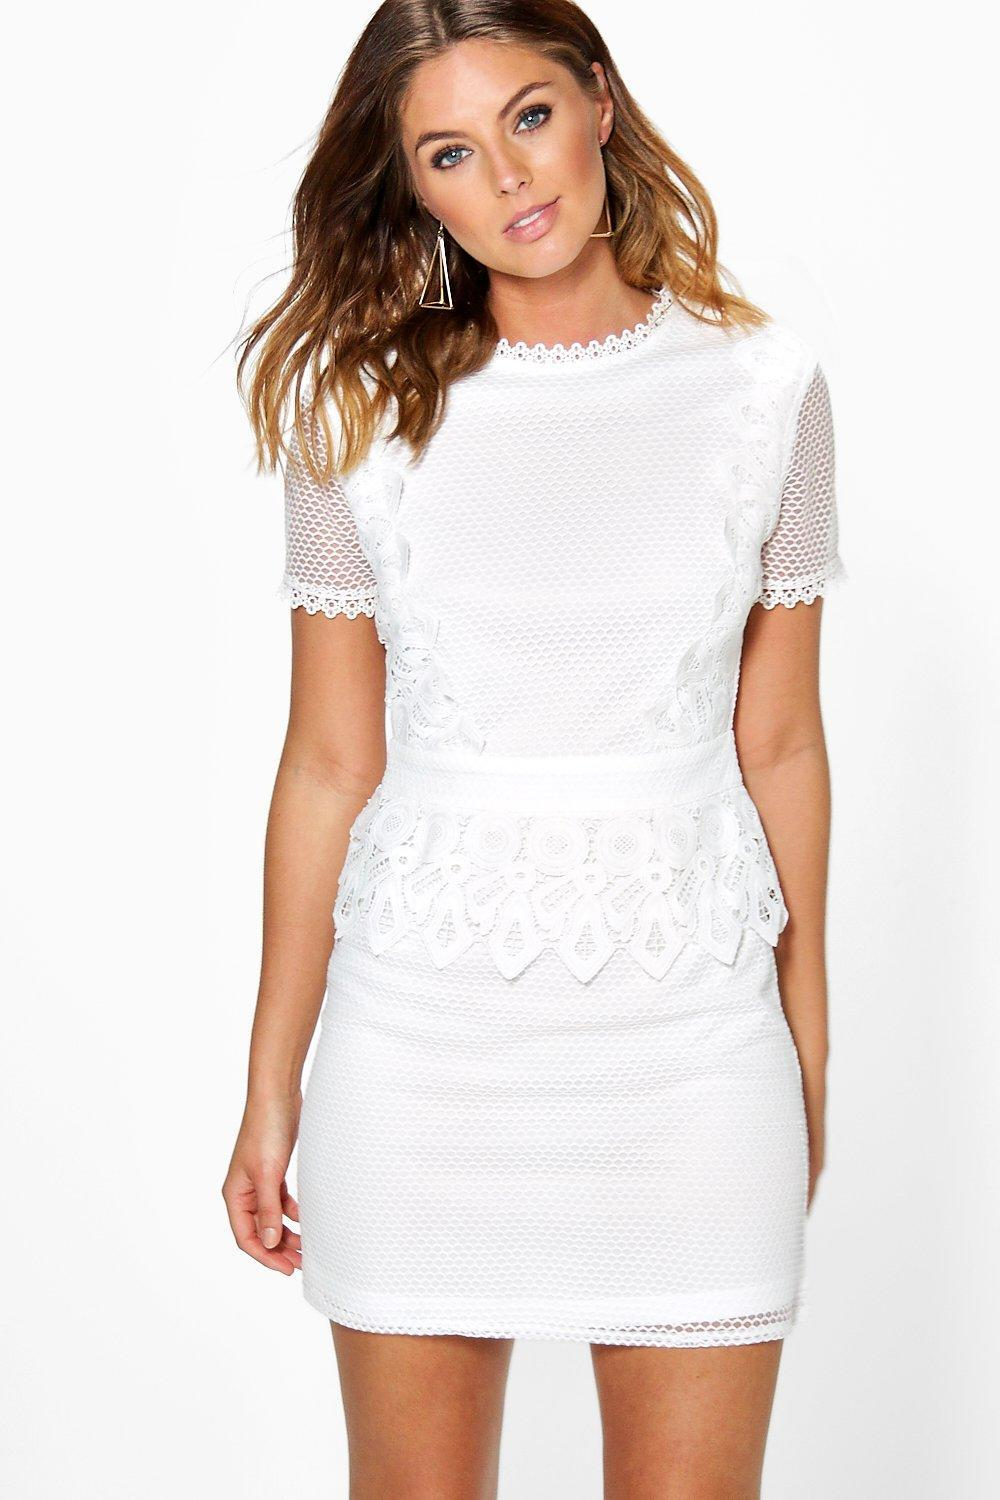 Cait Crochet Lace Peplum Shift Dress Ivory - style: shift; length: mini; fit: tailored/fitted; pattern: plain; waist detail: peplum waist detail; predominant colour: white; occasions: evening; fibres: polyester/polyamide - 100%; neckline: crew; sleeve length: short sleeve; sleeve style: standard; texture group: lace; pattern type: fabric; season: a/w 2016; wardrobe: event